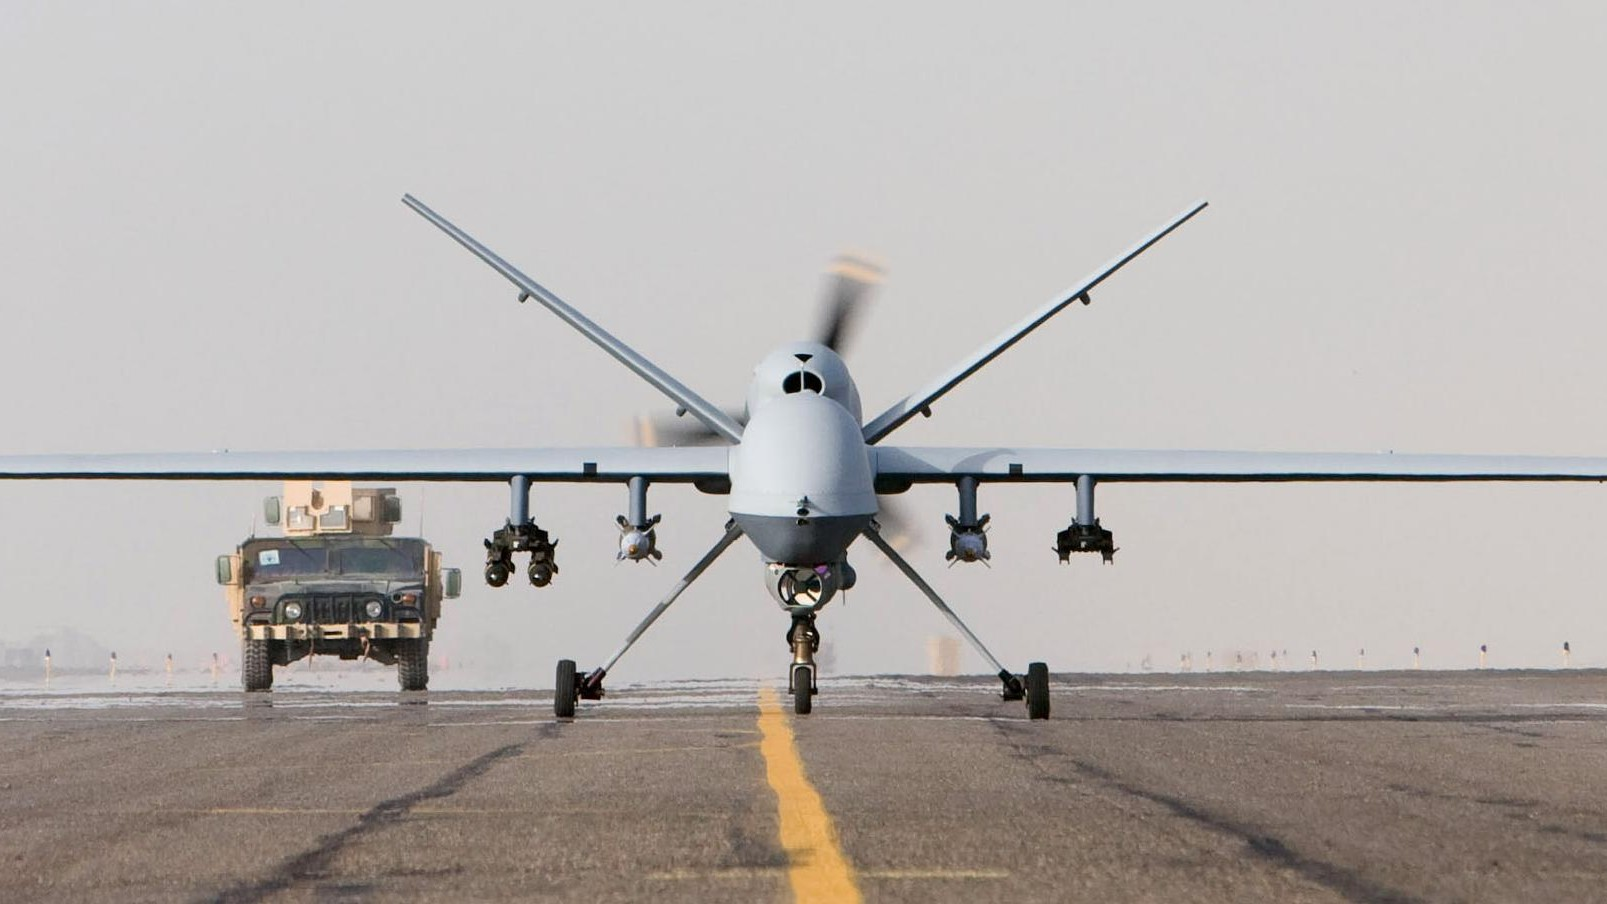 Canada Wants to Deradicalize Terrorists, So Why Is It Trying to Arm Drones?